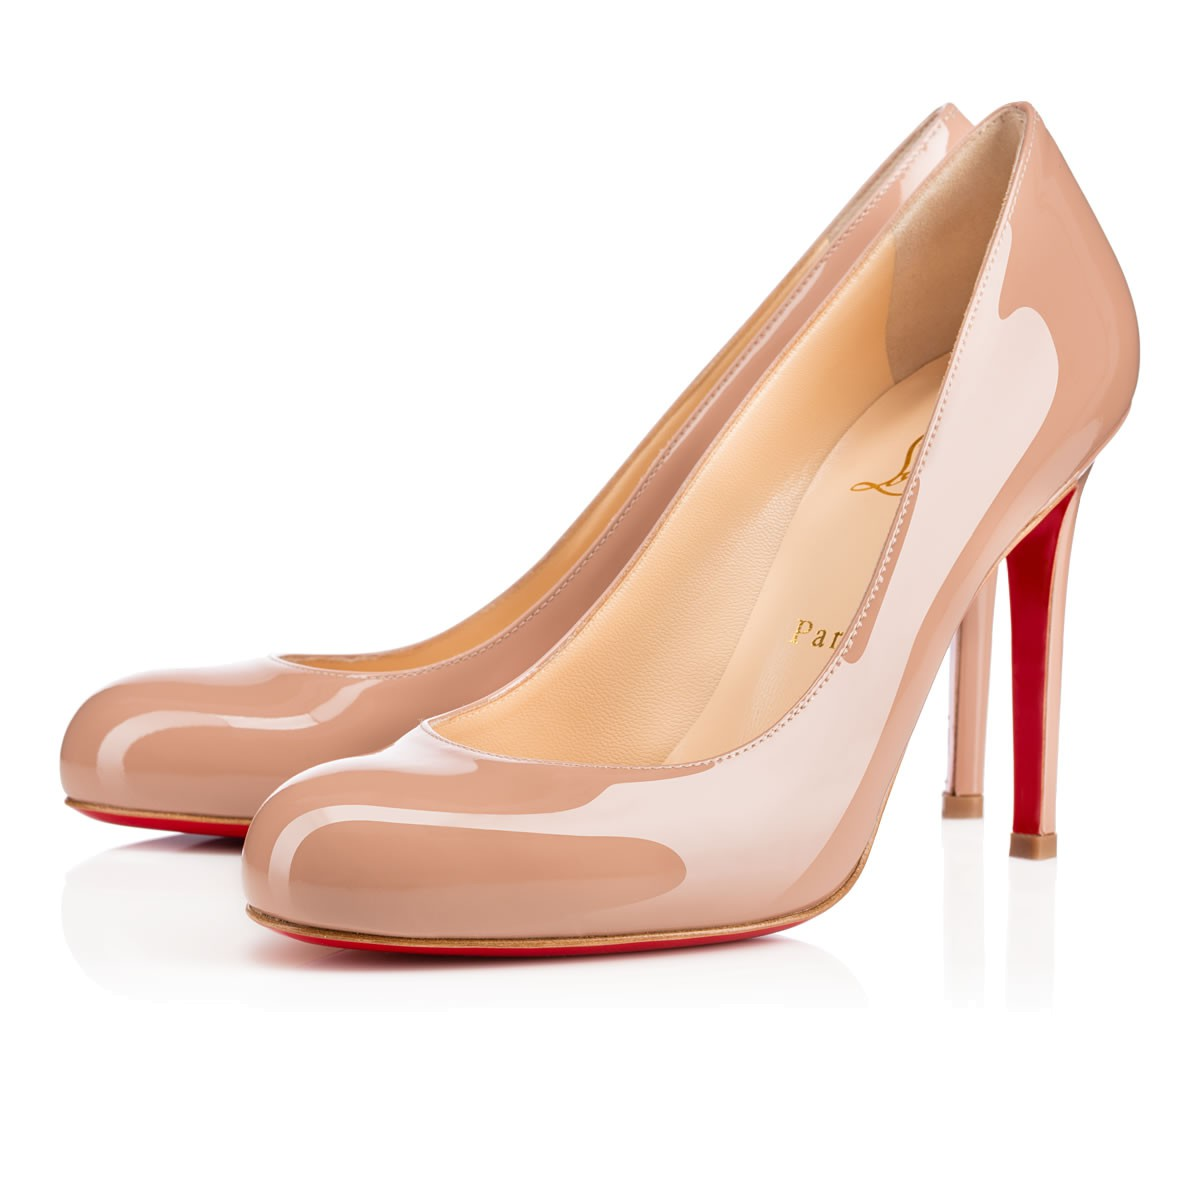 5b49c8a0f510 Simple Pump 100 Nude 6248 Patent Leather - Women Shoes - Christian ...